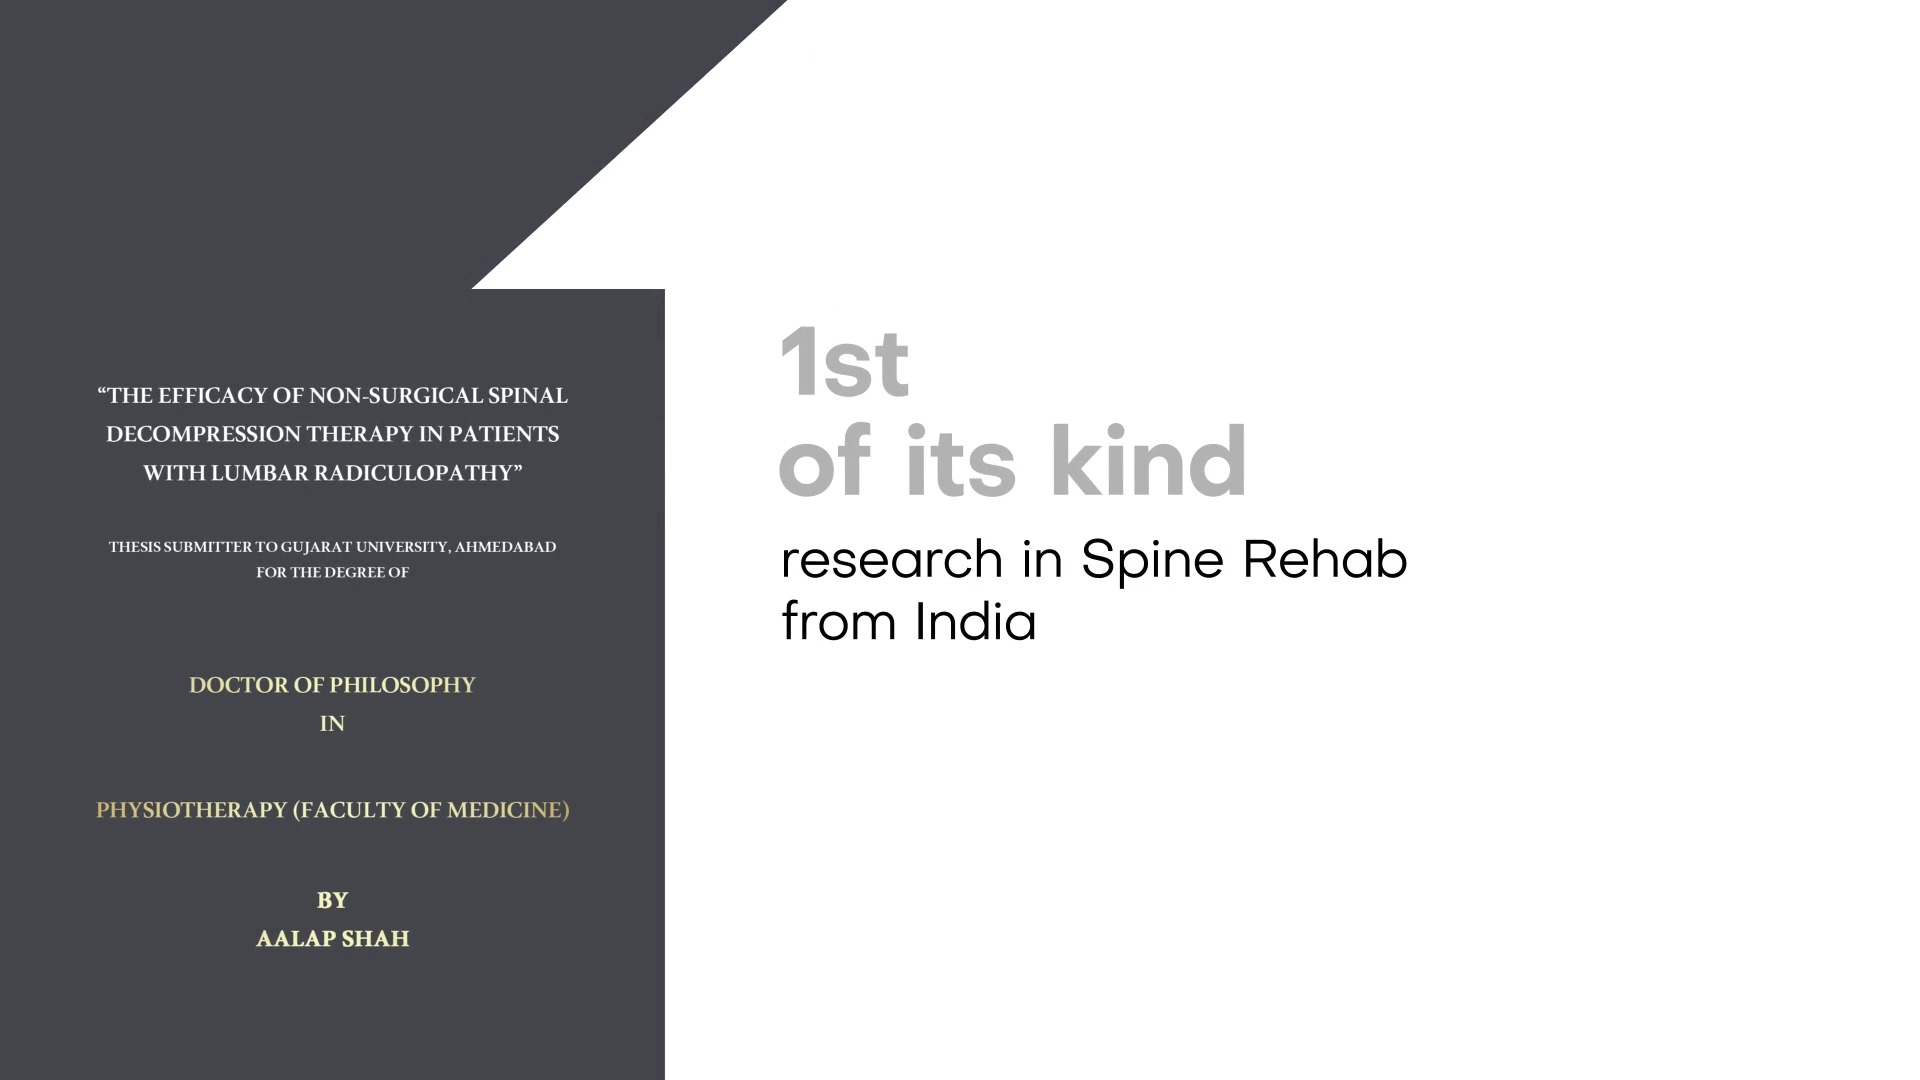 Patience, perseverance & constant dedication are the keys to unlock award-winning achievement because nothing comes as an accomplishment instantly and success cannot be achieved overnight!  Bringing to light the colossal efforts that went behind the mighty mission to formulate the first of its kind research in Spine Rehab from India by Dr. Aalap Shah. Yearning to set yet another benchmark in the arena of Physiotherapy, he has conducted a path breaking study that shall potently add value and evidence to the International Data and Global Research while establishing non-Surgical Spinal Treatment strategies as a mainstay of treatment for Slipped Disc & Sciatica.  This certainly calls for a celebration & with pride Mission Health congratulates Dr. Aalap Shah for walking miles ahead of the league.  #DrAalapShah #PathBreakingStudy #PHDLife #PHDStudy #NonSurgicalSpineTreatment #SlippedDisc #ProudMoment #MilestoneAchieved #ScholarsOfIndia #MissionHealth #CentreOfExcellence